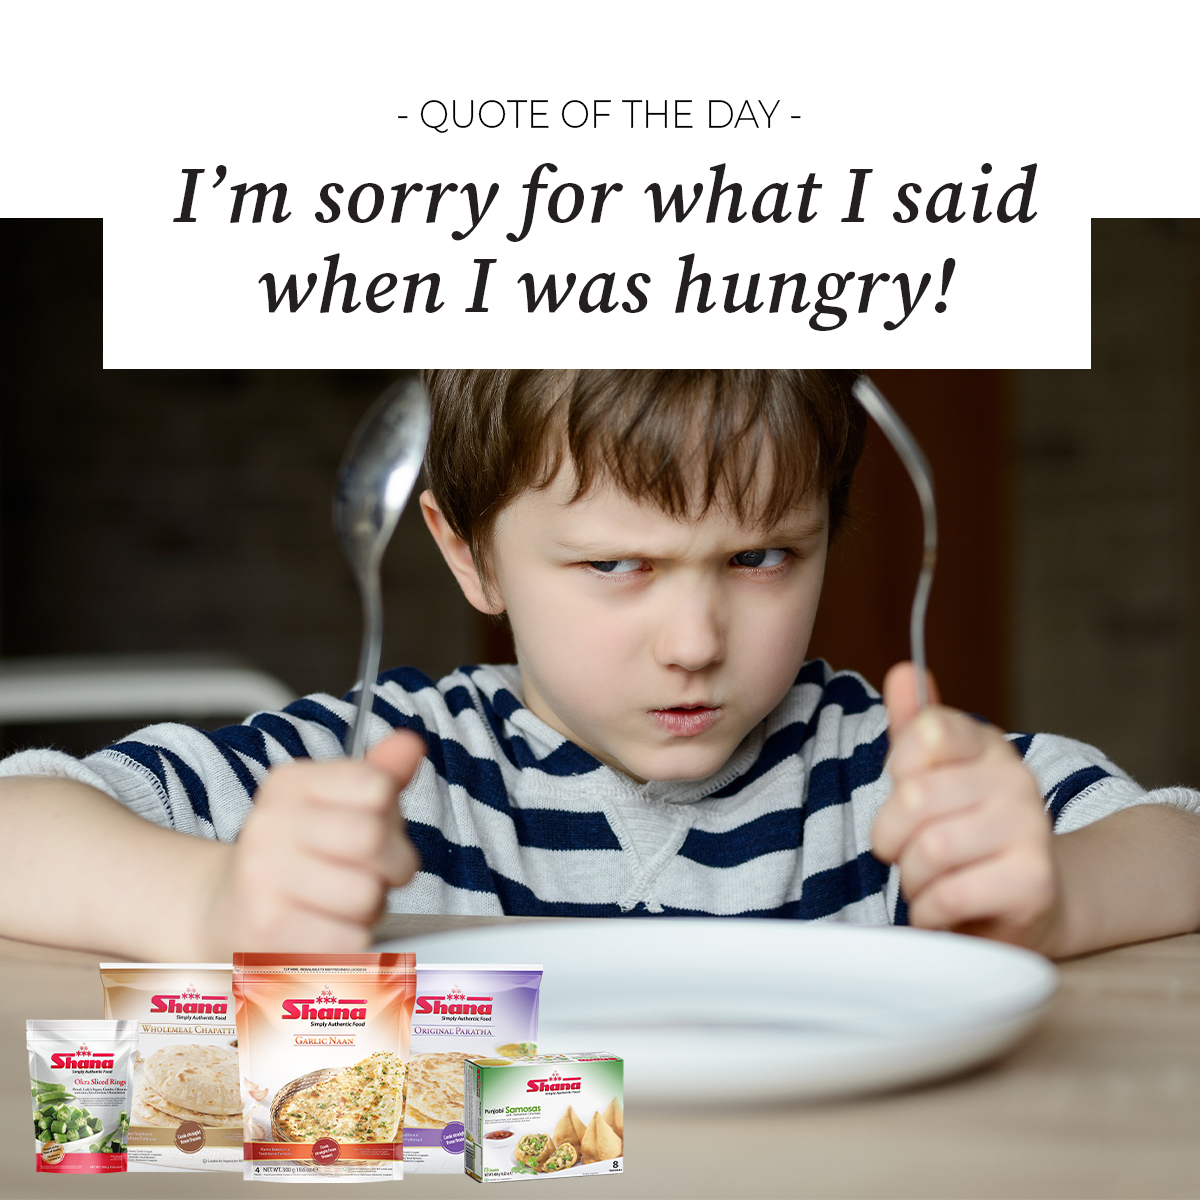 'I'm sorry for what I said when I was hungry' Our frozen range makes it exteremely easy and convienent to avoid those 'hangry' moments…  #shana #shanafoods #foodstagram #foodie #instafood #instagood #foodfeed #frozen #convenient #quote